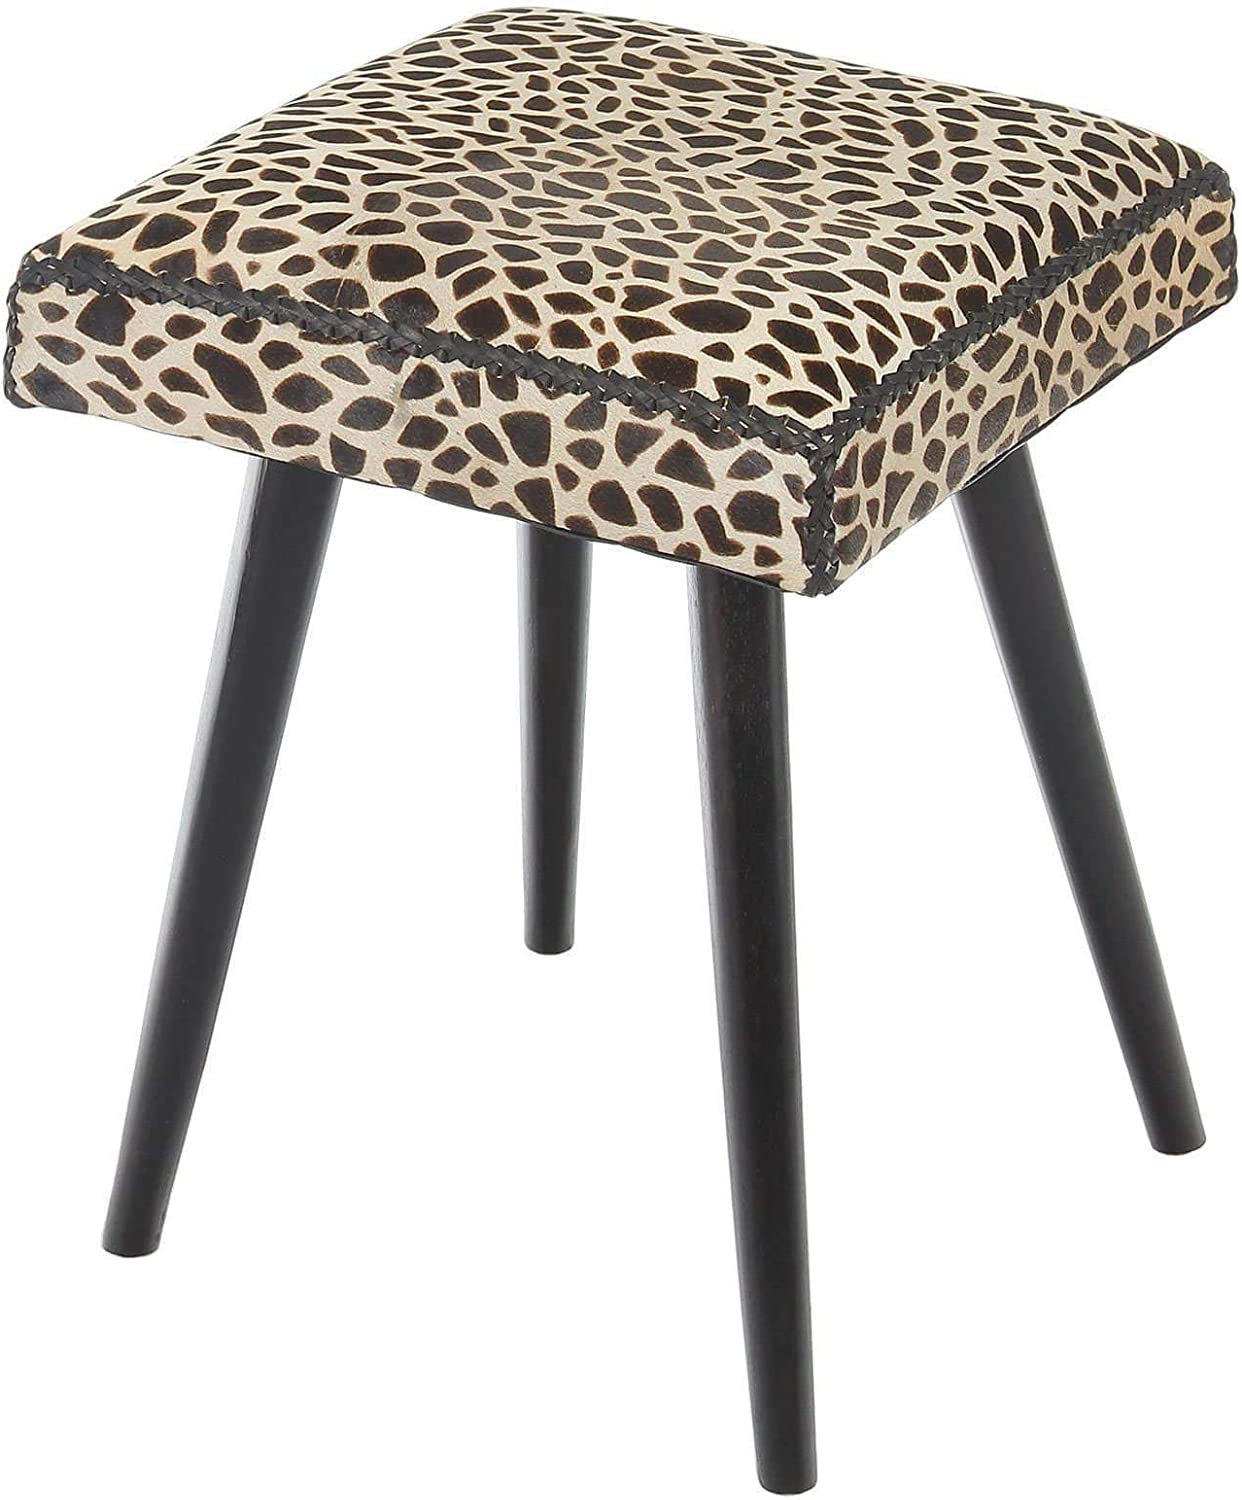 Amazon Com Safari Cow Hide Mahogany Vanity Stool Leopard Print Home Kitchen